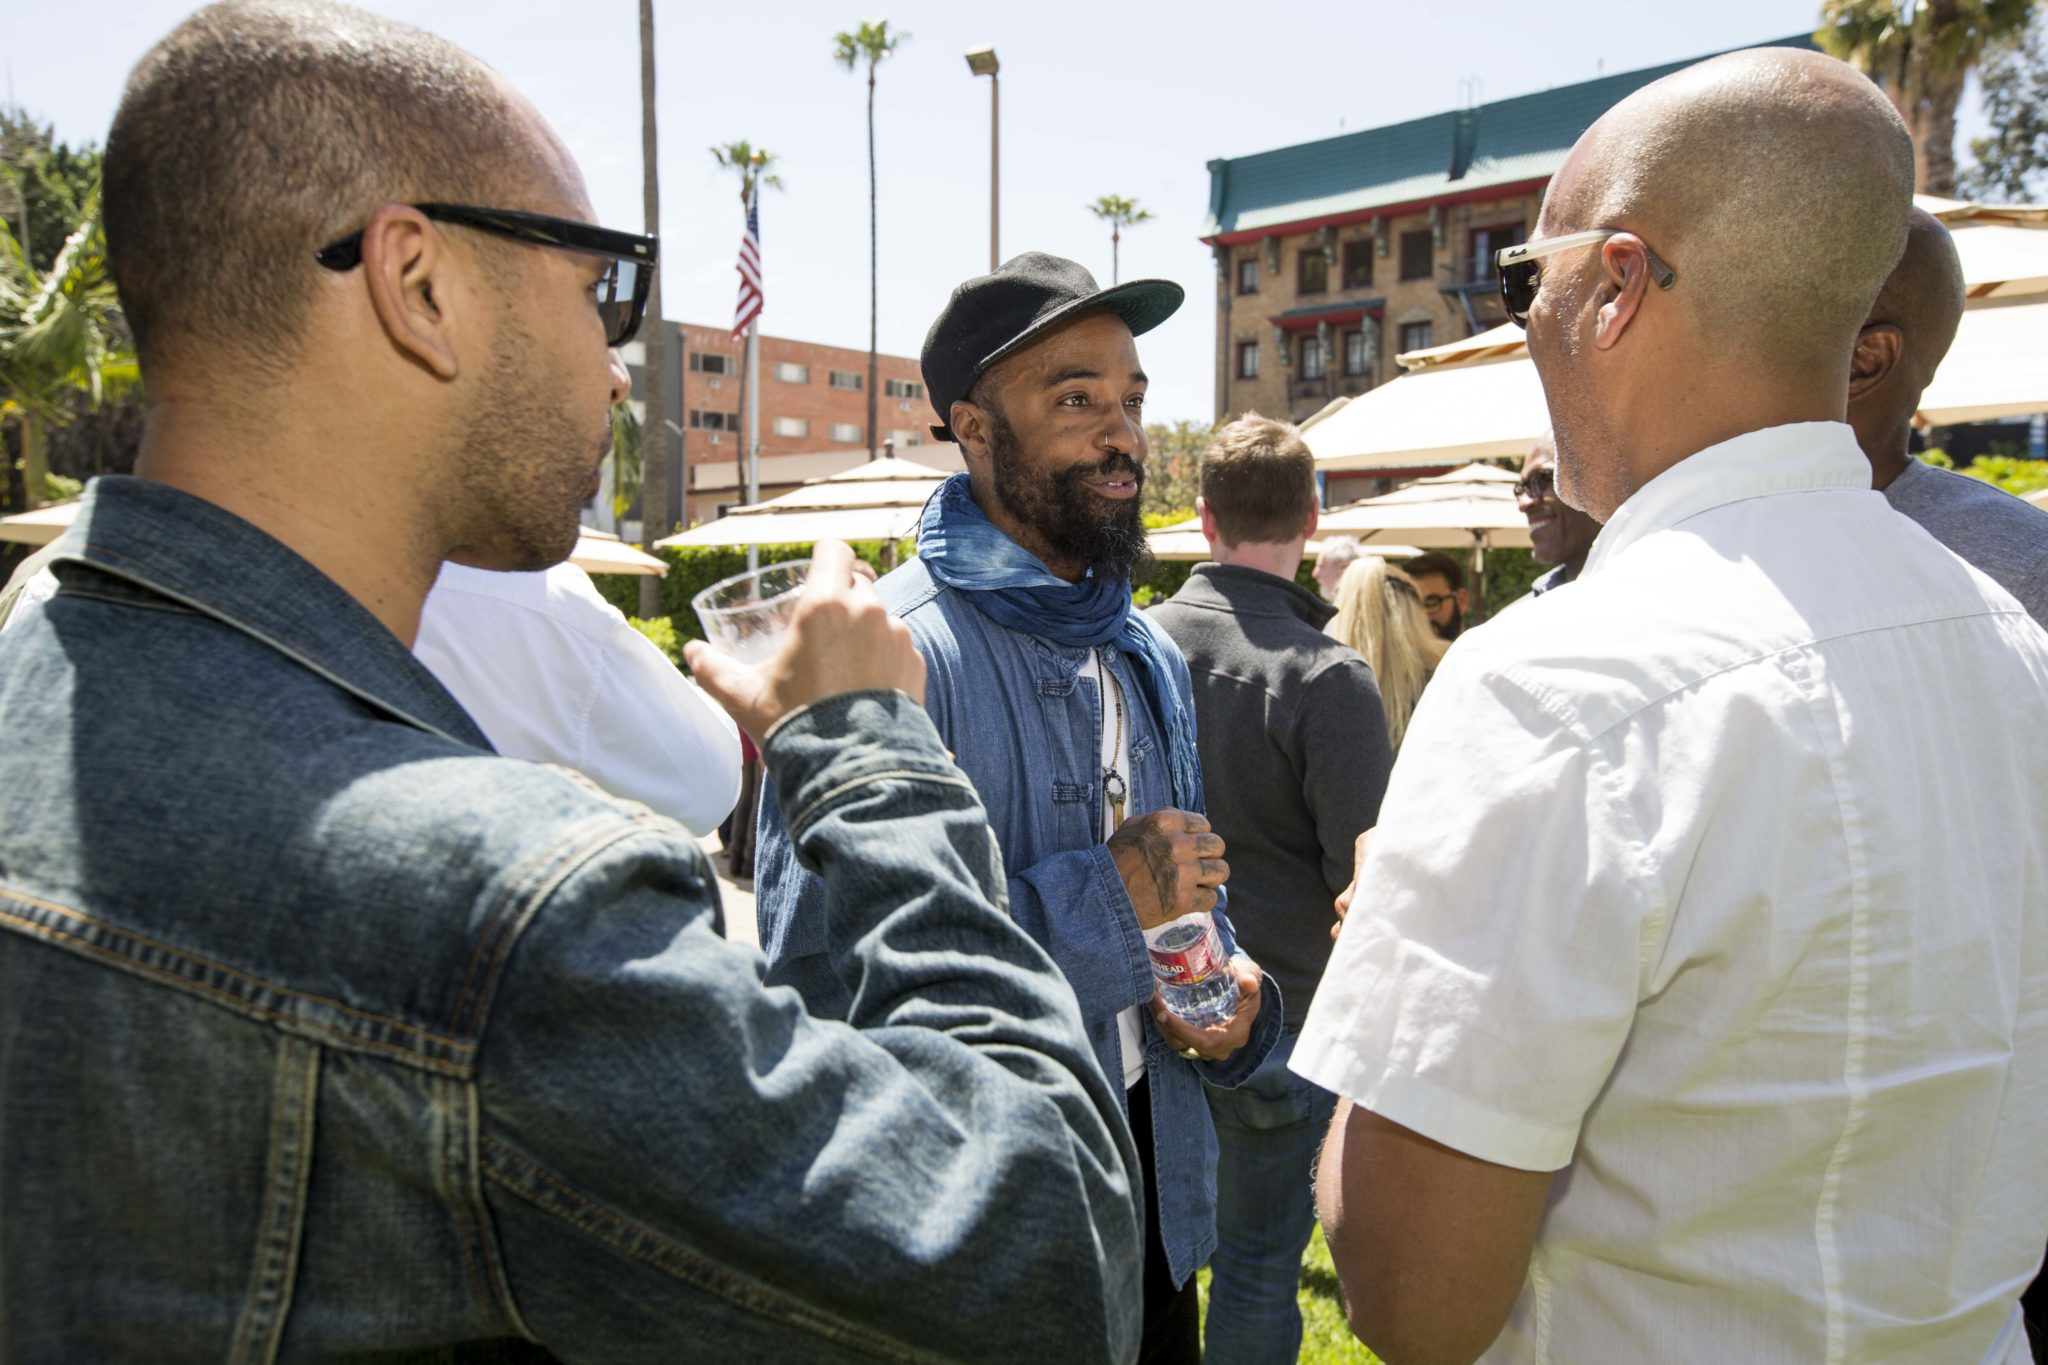 Bradford Young, ASC talks to attendees.